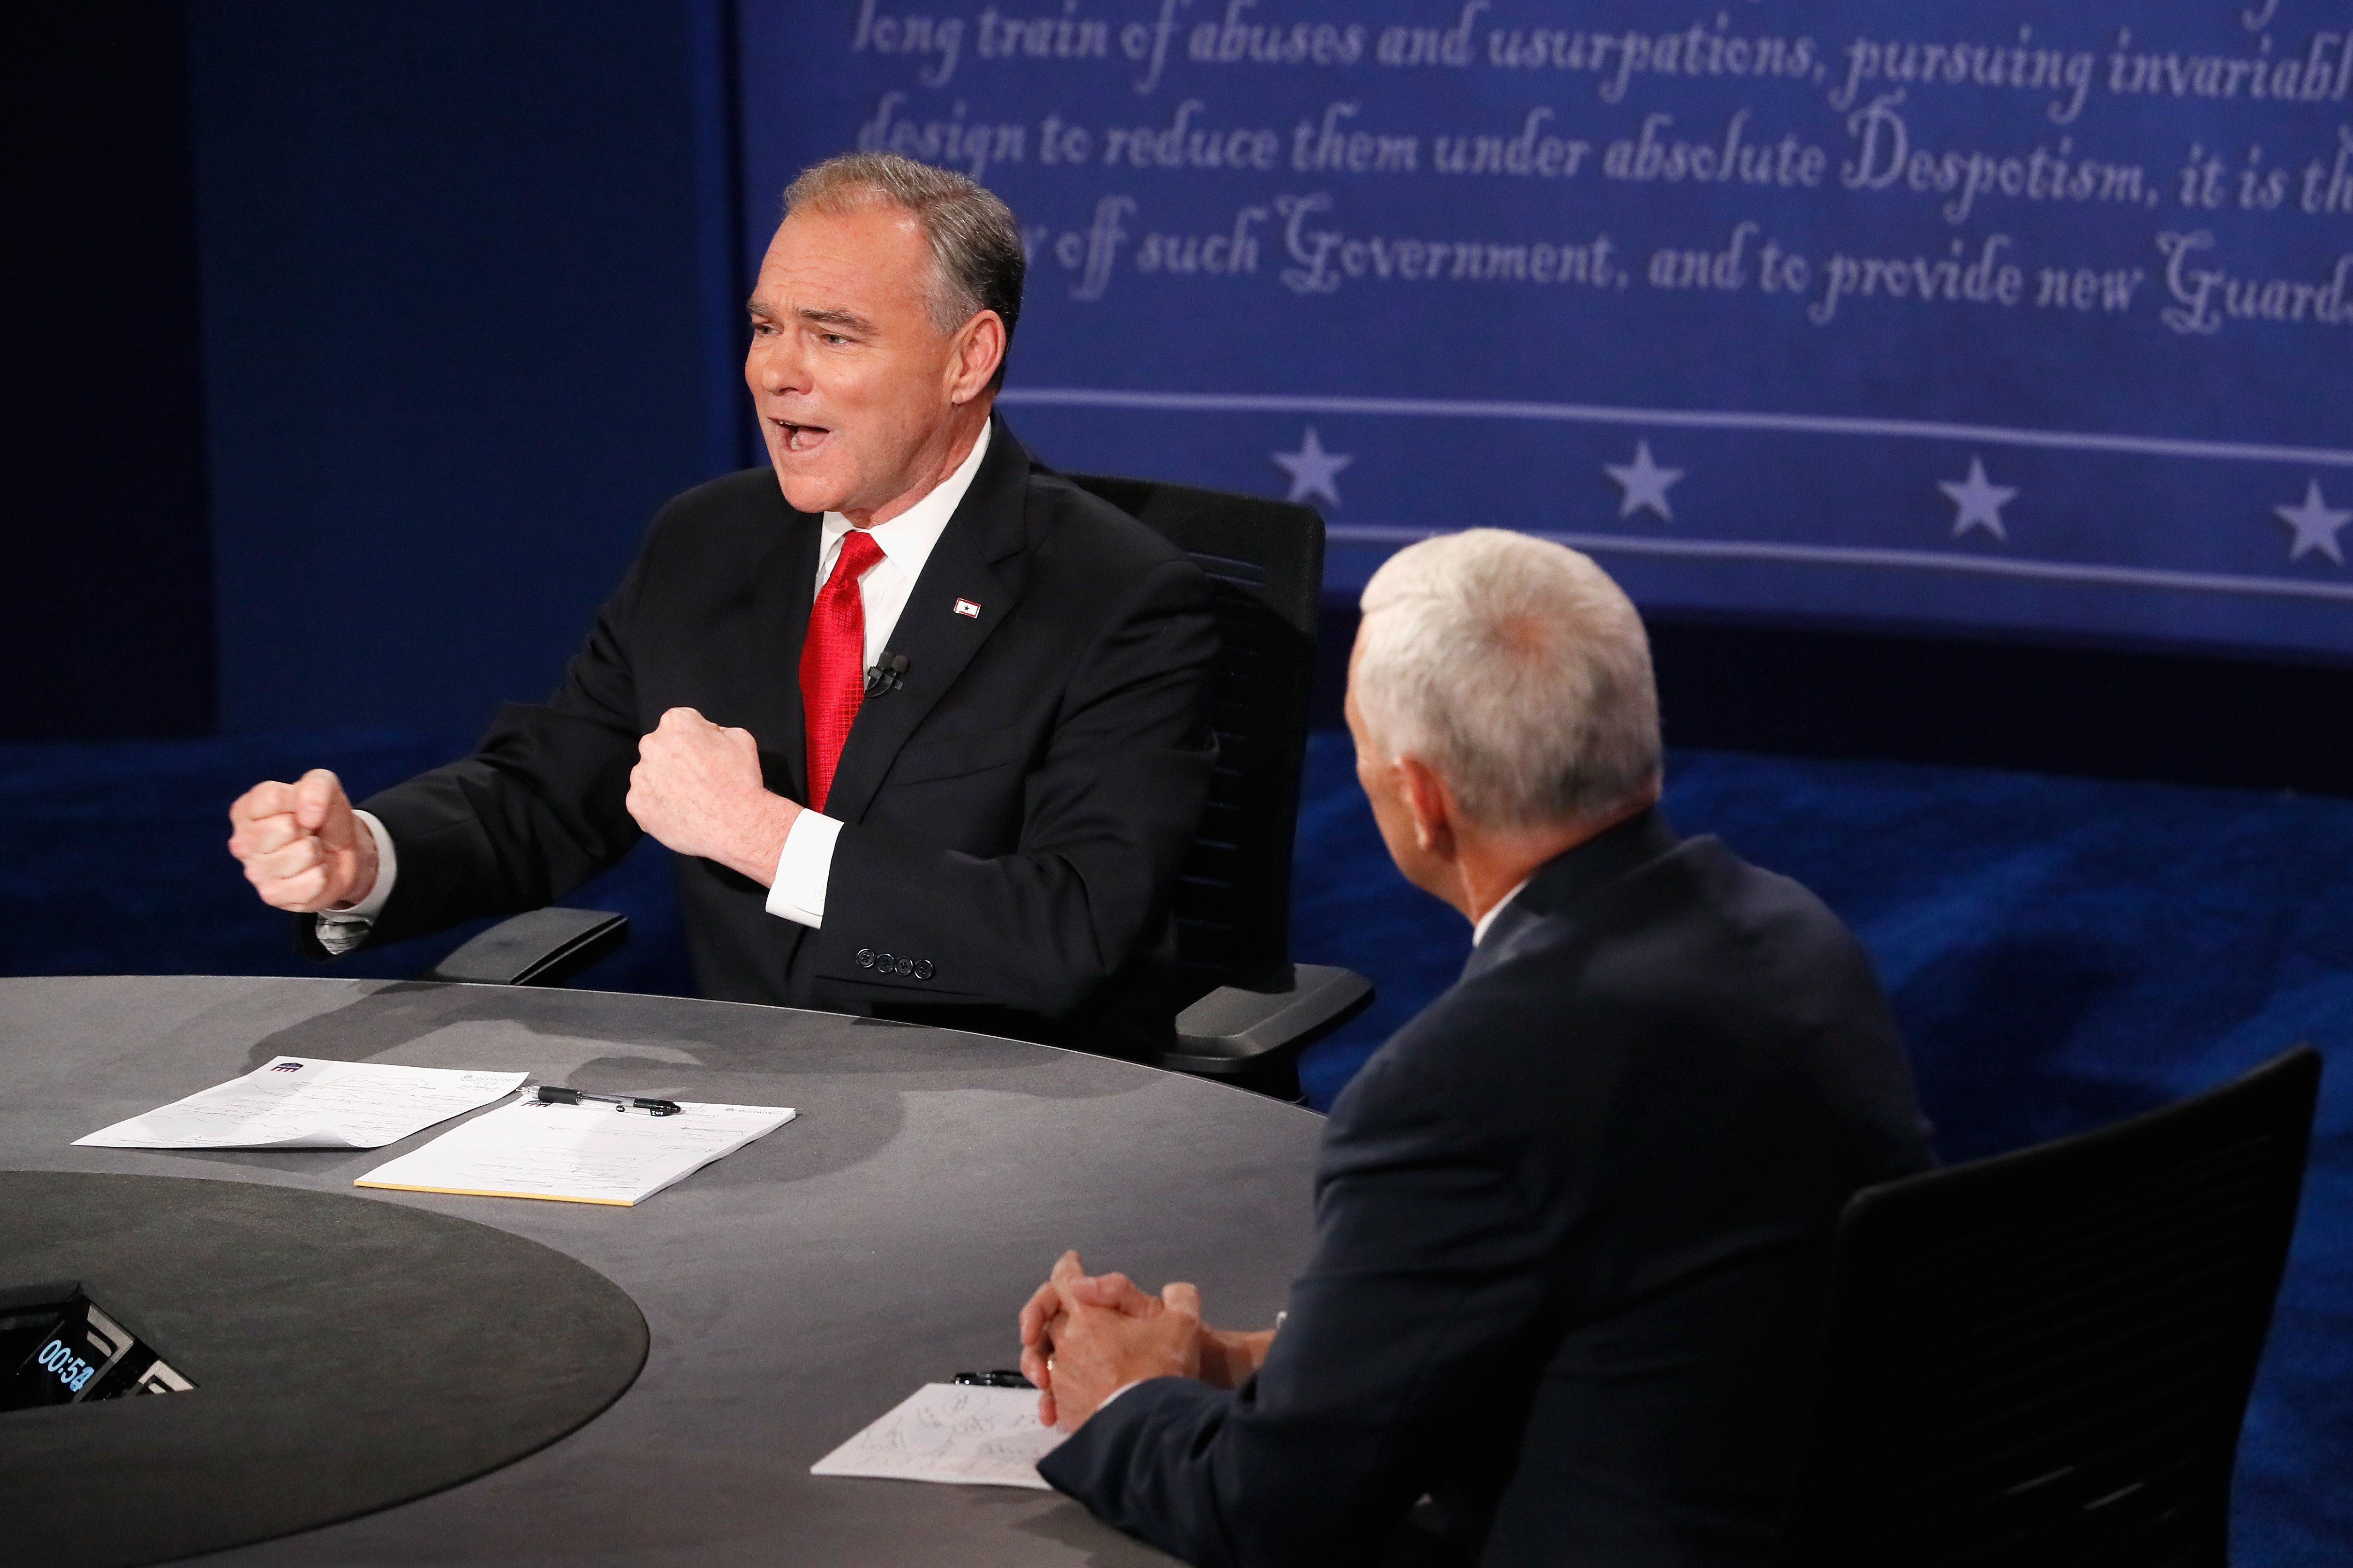 FARMVILLE, VA - OCTOBER 04:  Democratic vice presidential nominee Tim Kaine (L) and Republican vice presidential nominee Mike Pence (R) debate during the Vice Presidential Debate at Longwood University on October 4, 2016 in Farmville, Virginia.  This is the second of four debates during the presidential election season and the only debate between the vice presidential candidates.  (Photo by Andrew Gombert - Pool/Getty Images)